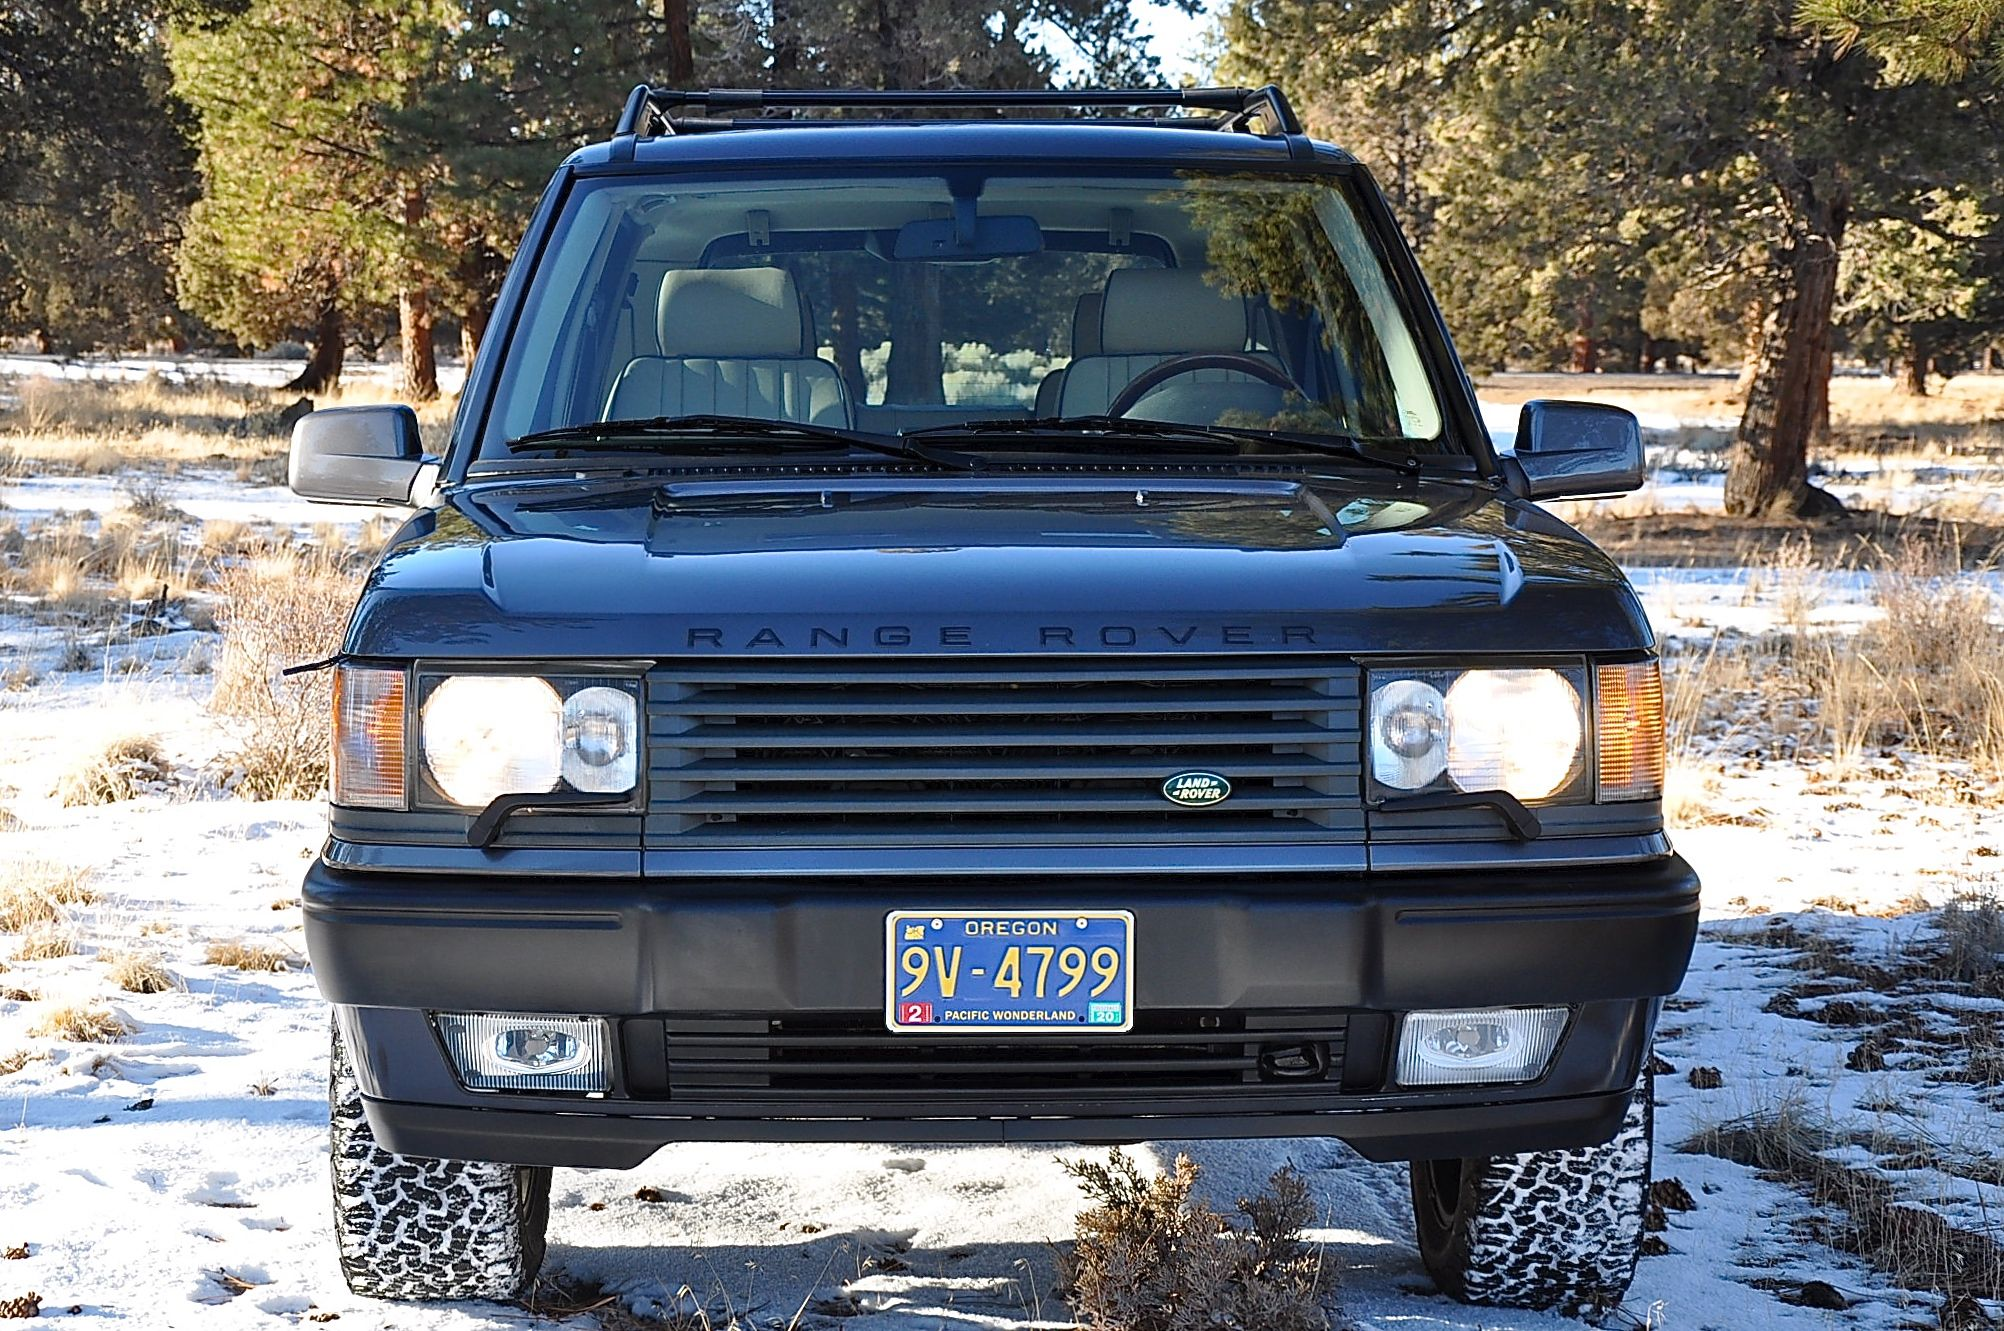 2001 Land Rover Range Rover Range Rover Land Rover Range Rover For Sale